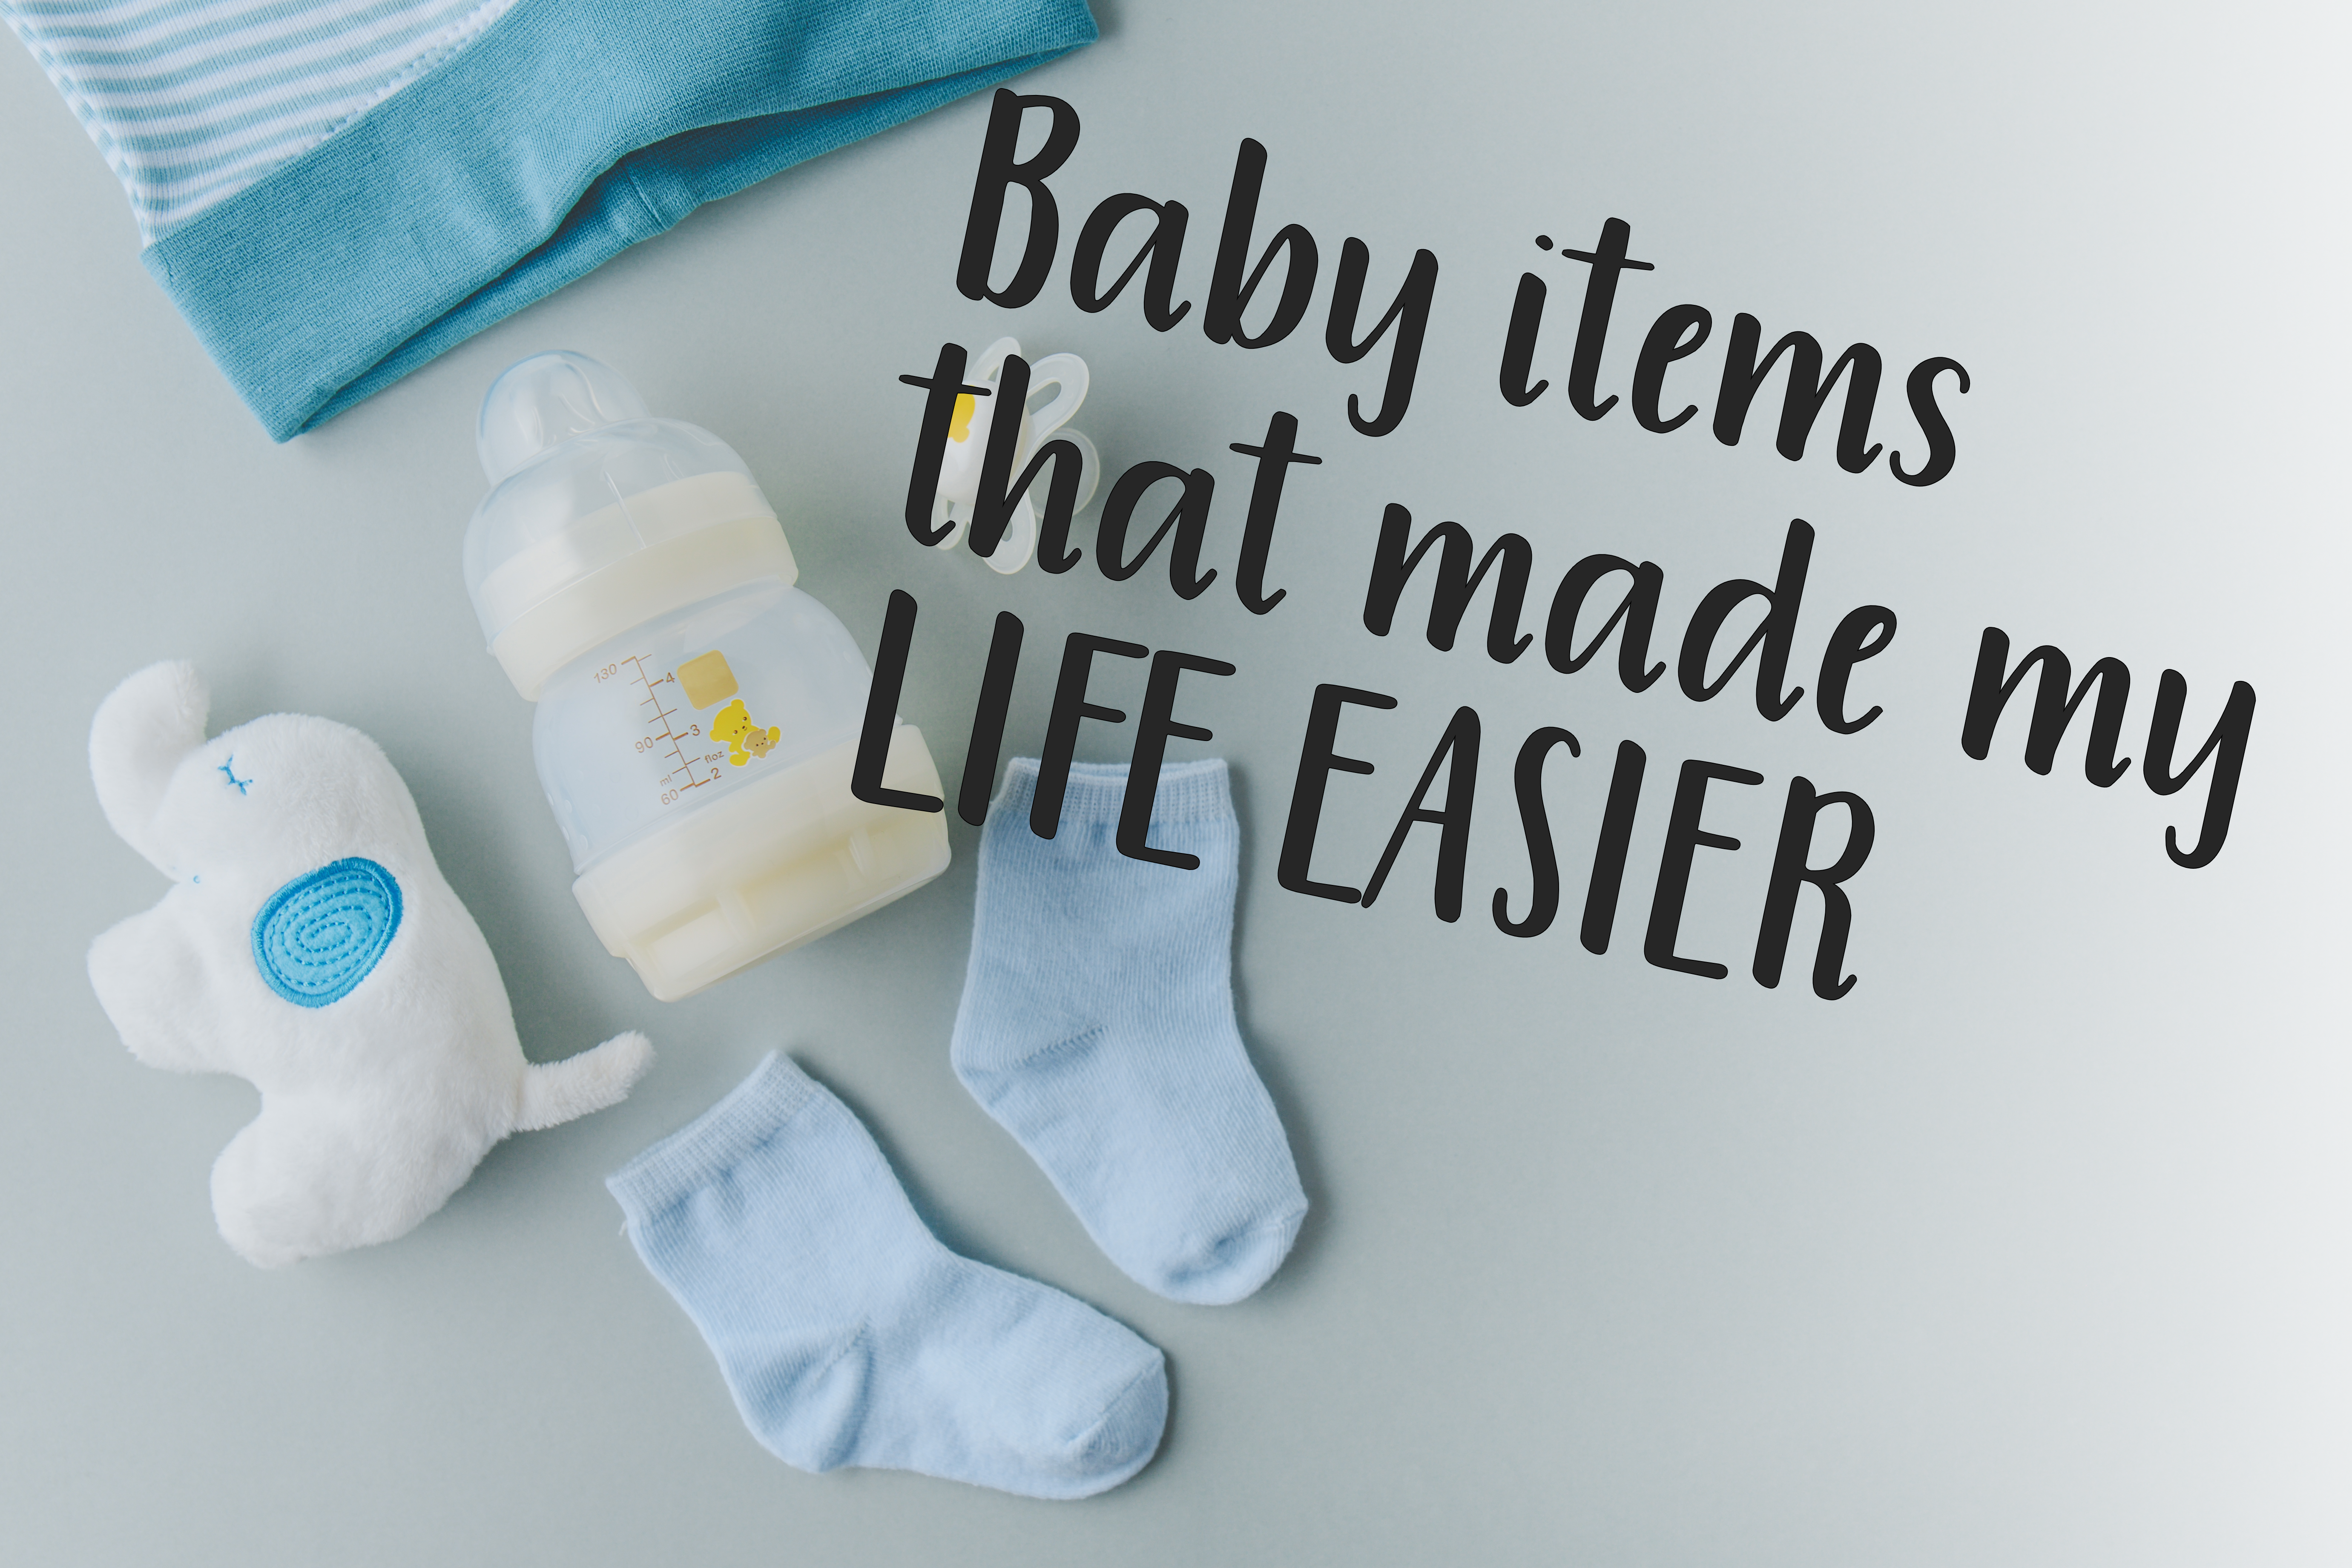 Baby Items to make life easier